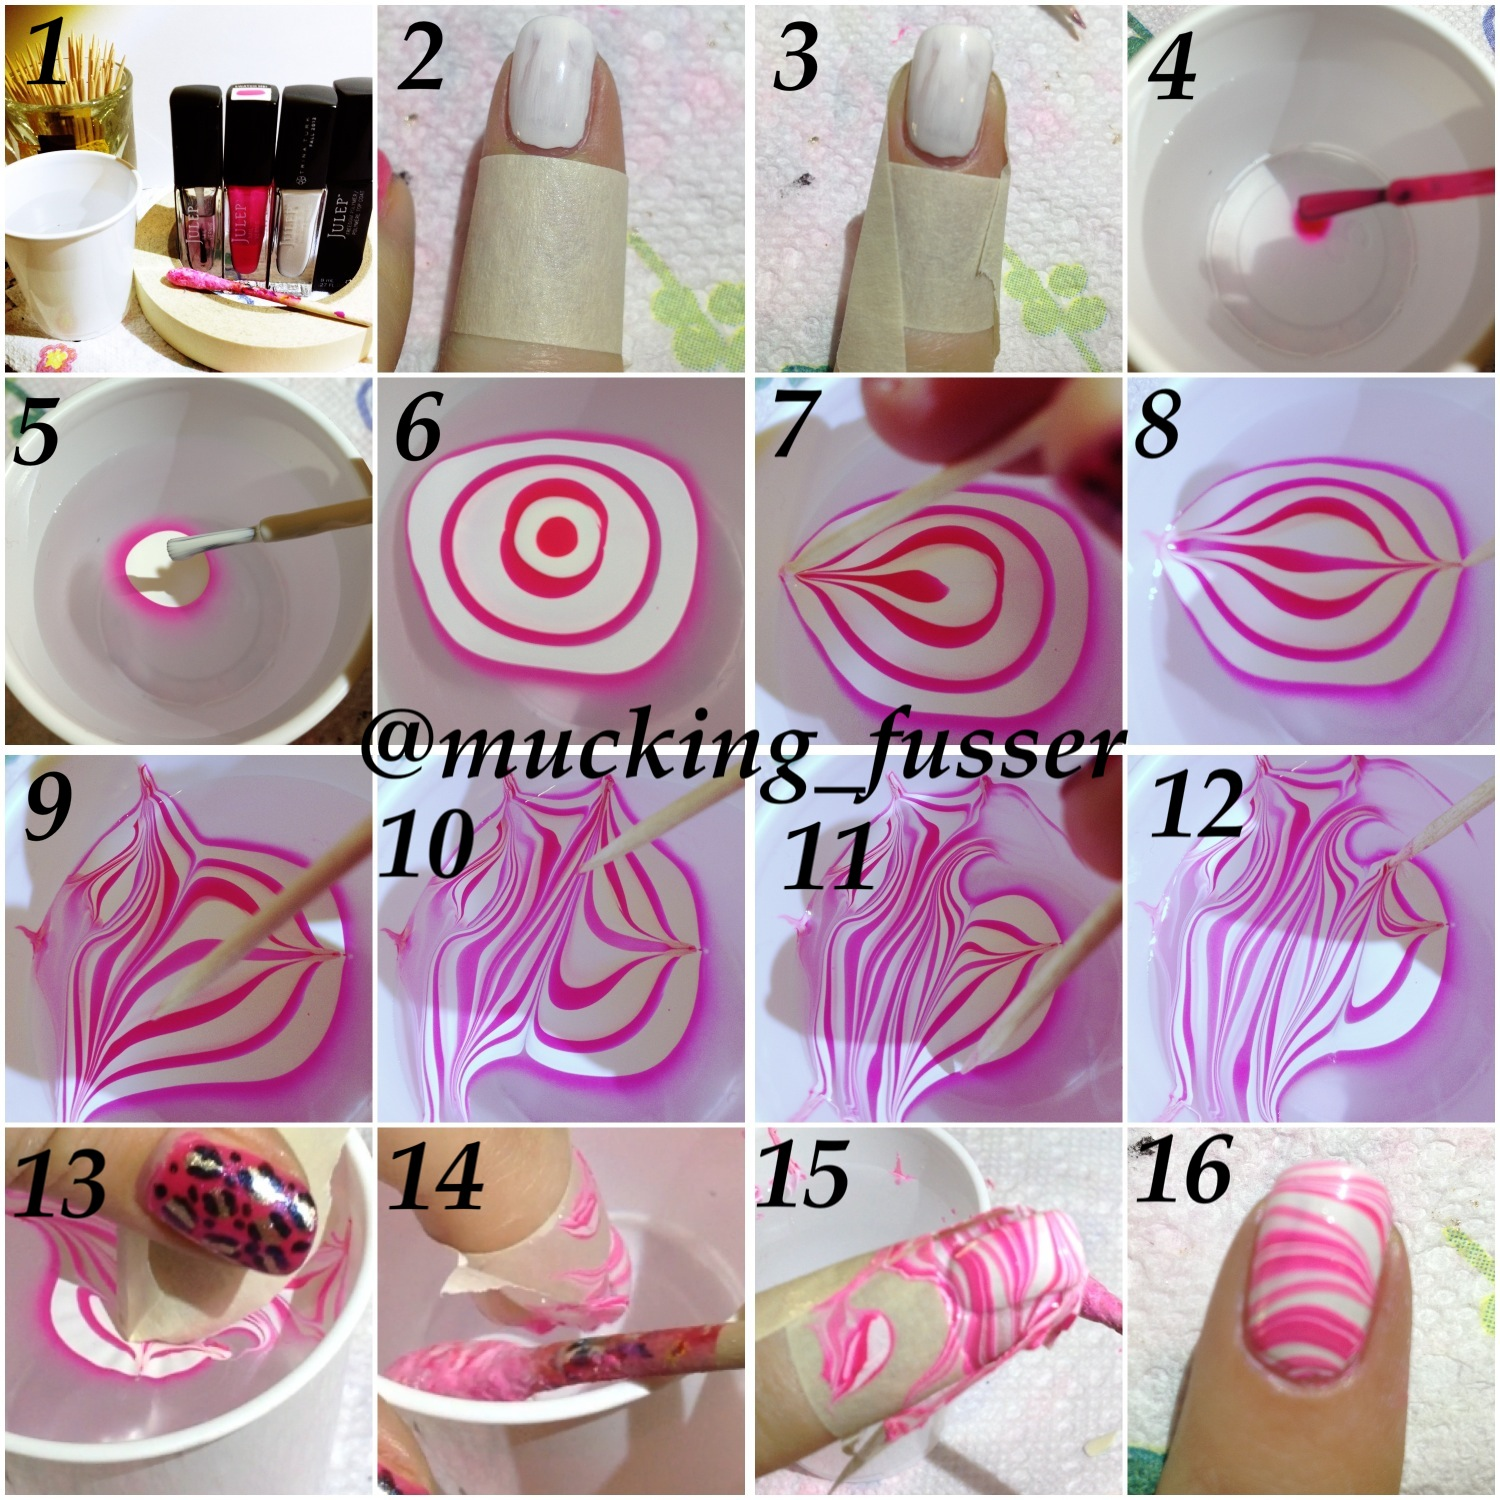 TUTORIAL: Striped Water Marble – Mucking Fusser